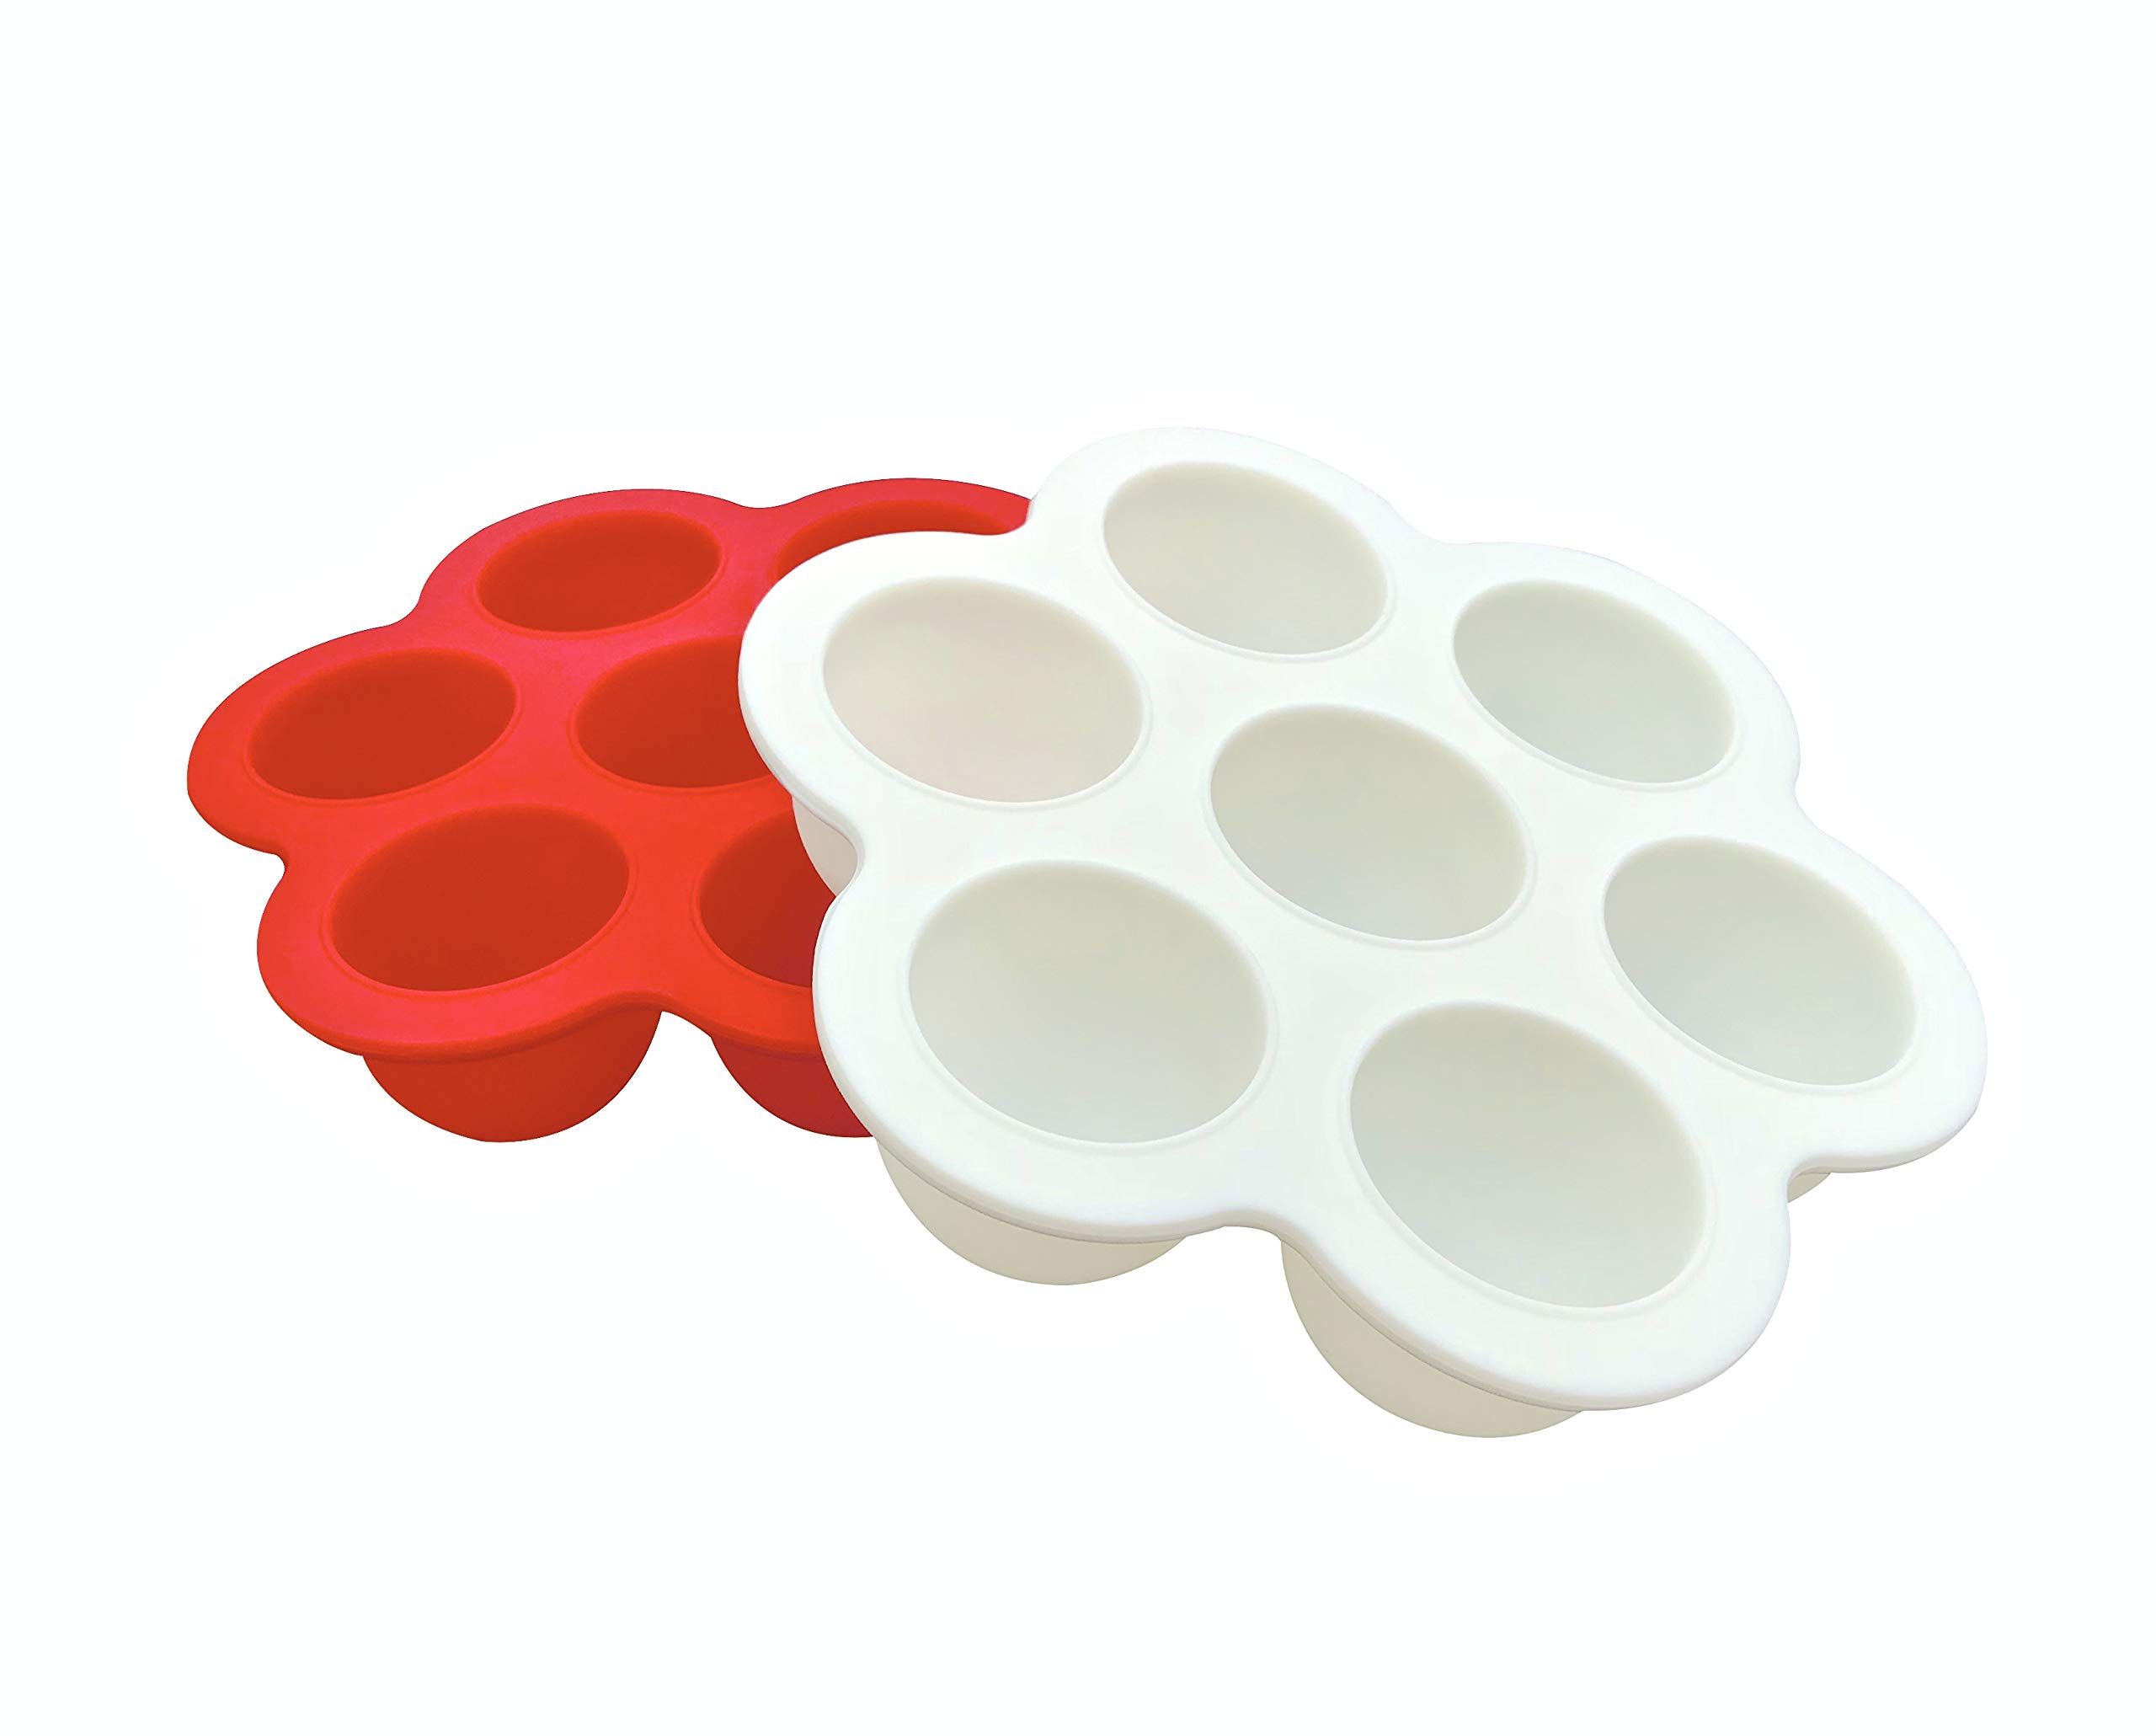 2-PACK Silicone Egg Bites Molds for Instant Pot Mini 3 Quart Pressure Cooker Accessories - Bpa Free Silicone Molds for Instant Pot 3 qt, 6 qt Accessory - Baby Food Freezer Trays with lids 1oz portions